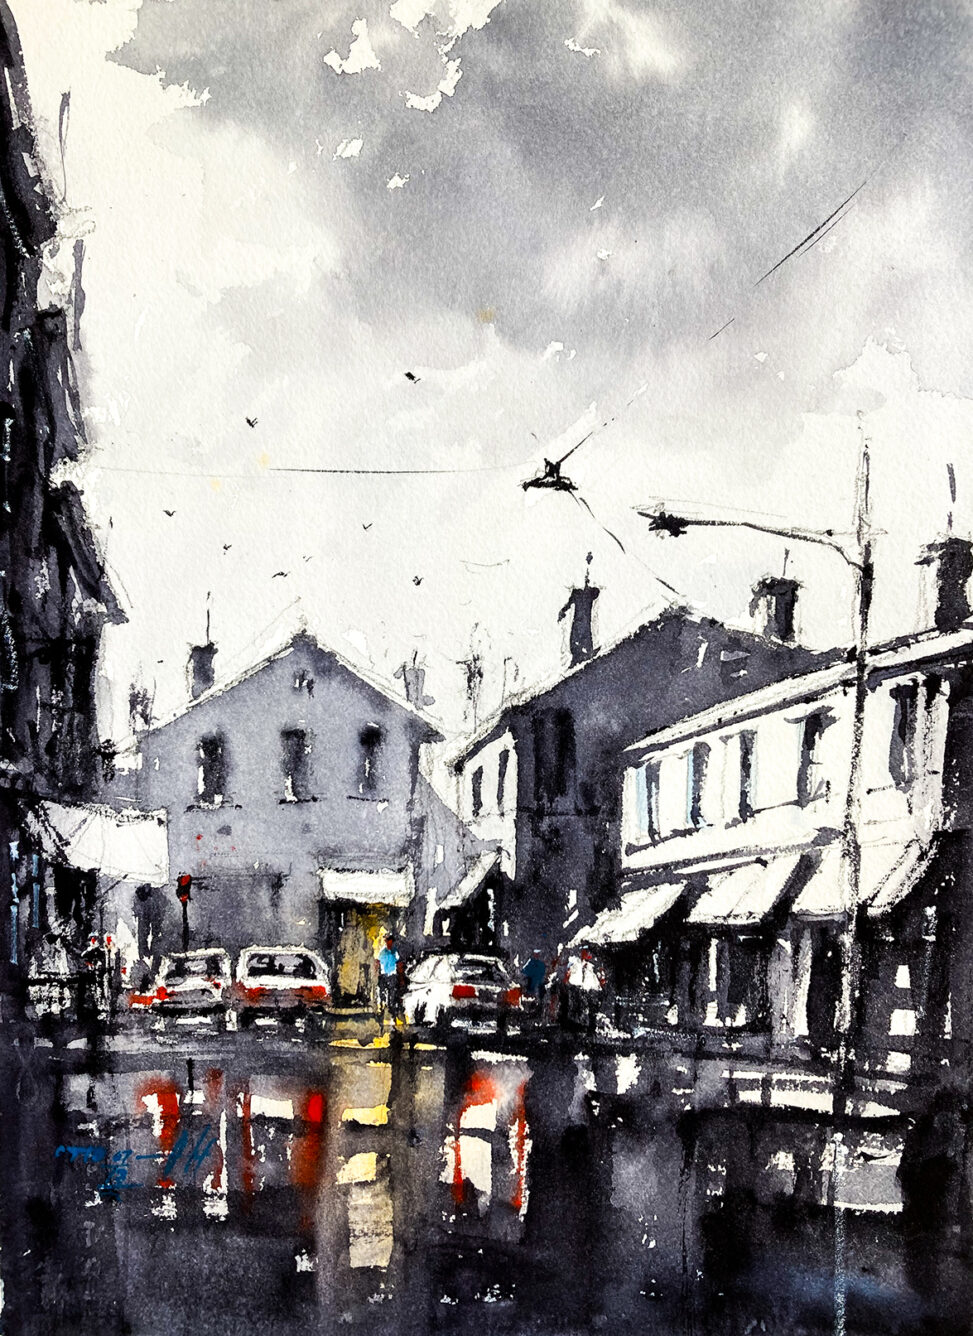 Watercolor Painting of a street scene